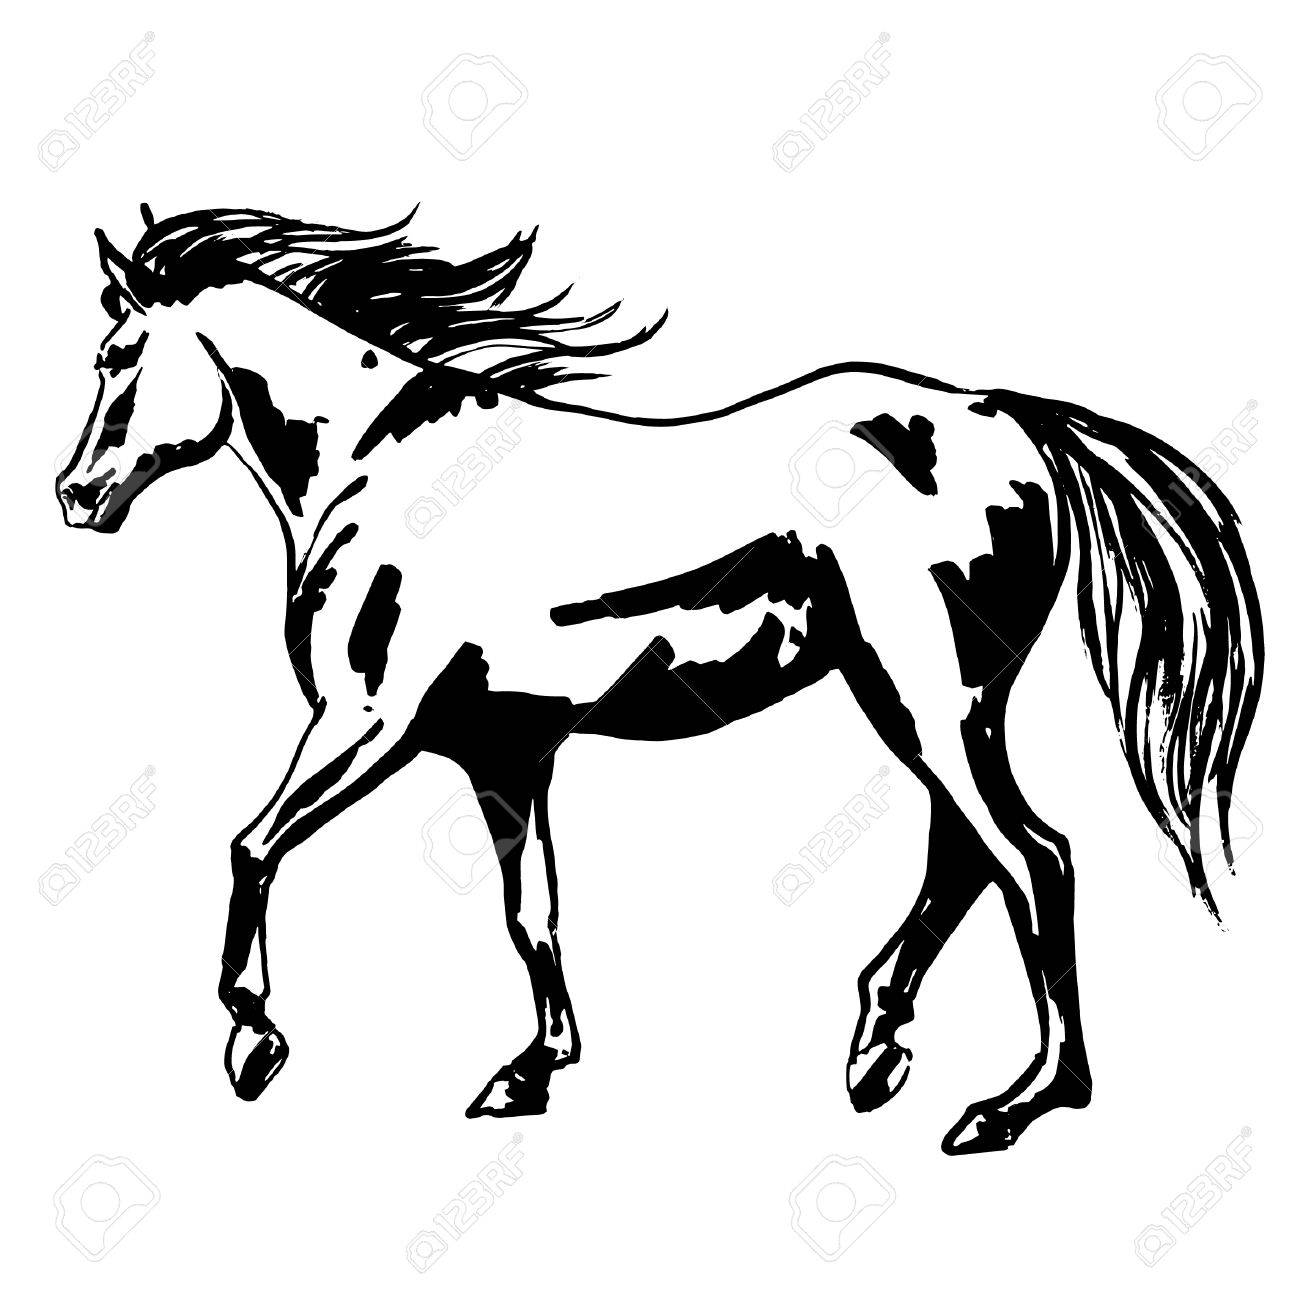 beautiful horse painted illustration walking purebred mare horse RE MAX Framingham MA beautiful horse painted illustration walking purebred mare horse with flowing silky mane and tail